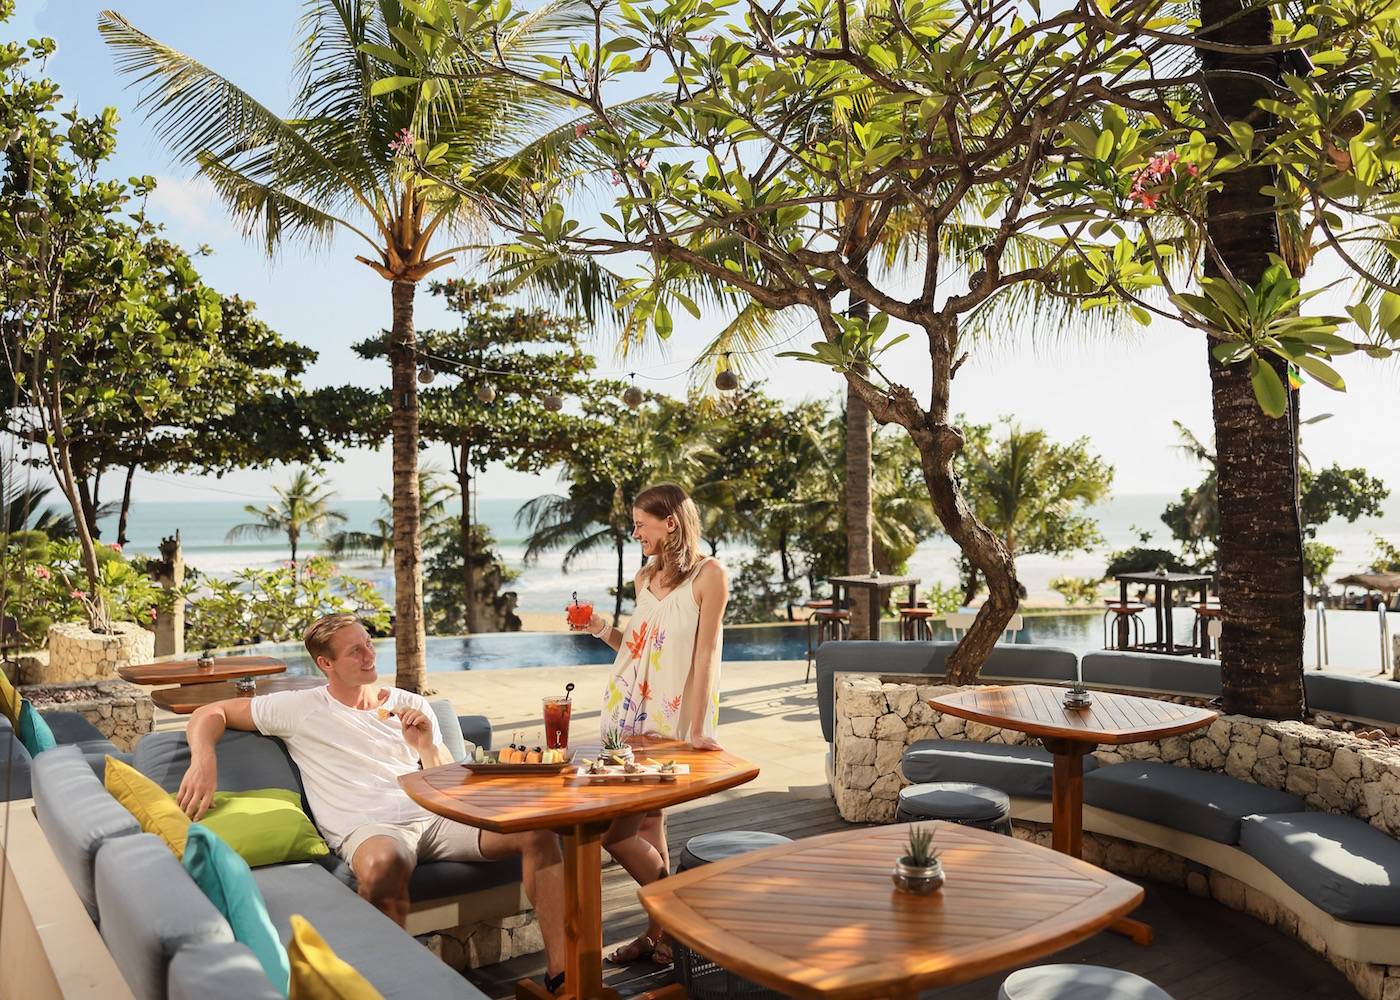 Couple having drinks on an alfresco terrace with cabanas, trees, and an infinity pool at S.K.A.I. Beach Club at Padma Resort Legian in Bali, Indonesia